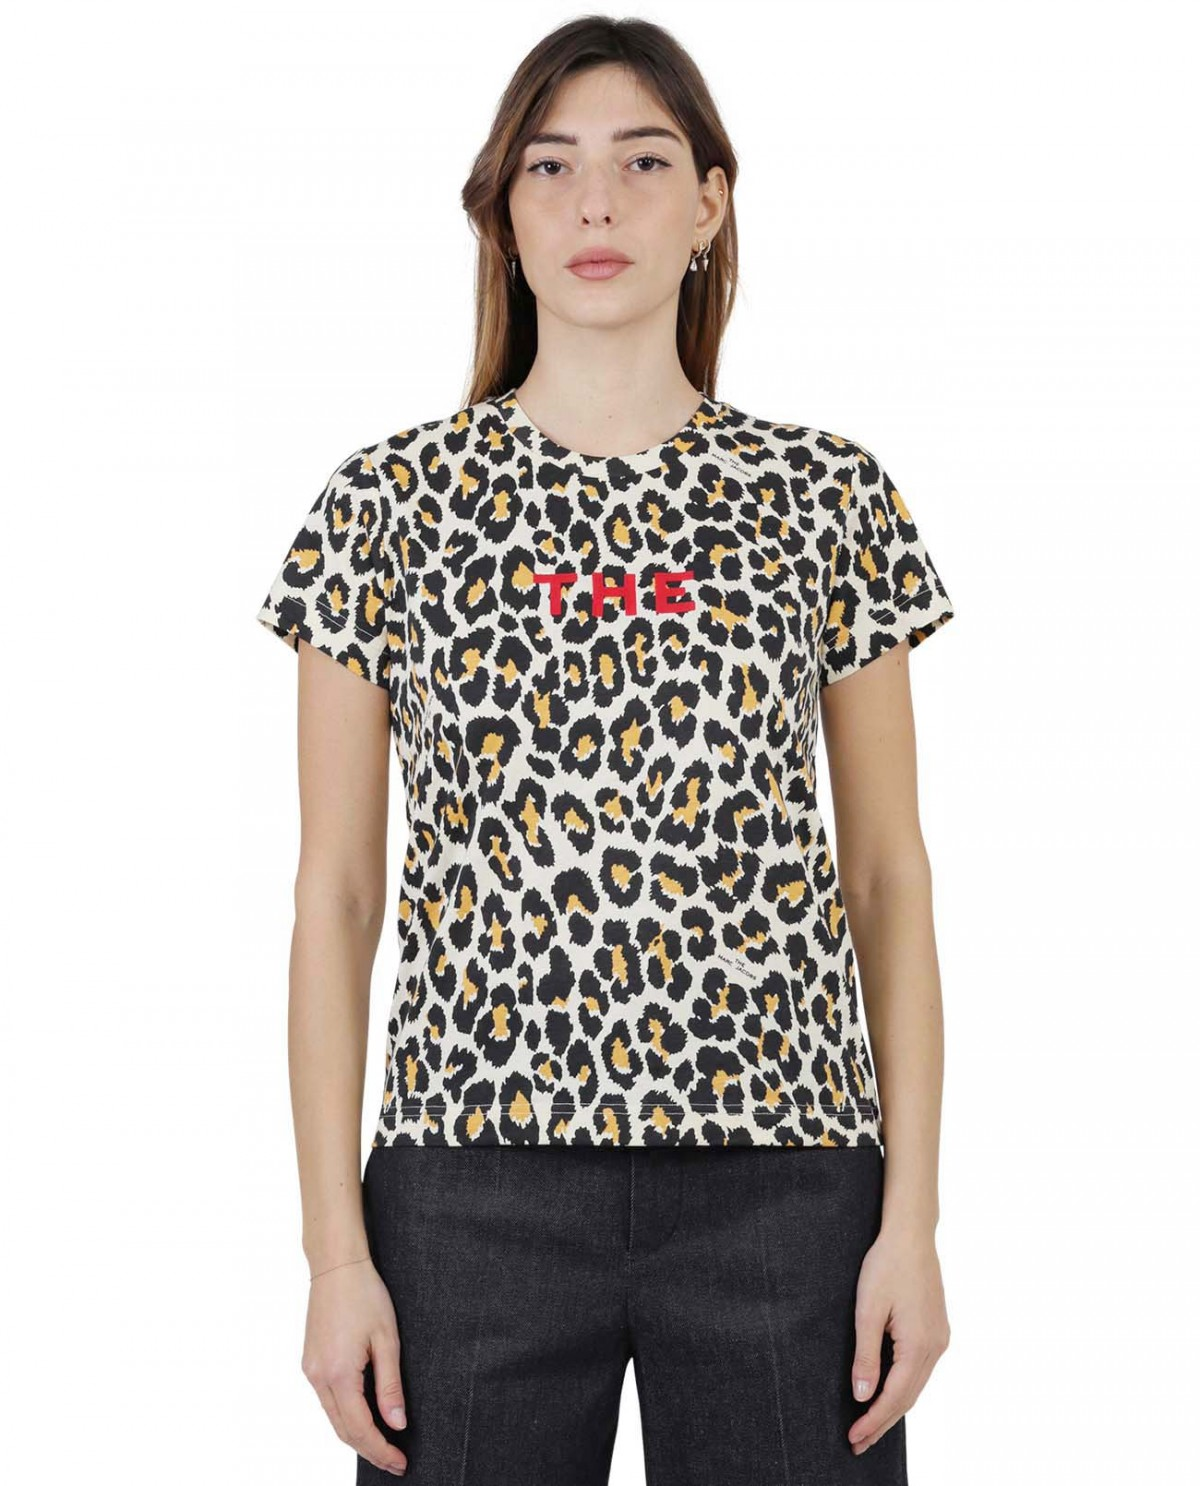 The Marc Jacobs leopard t-shirt